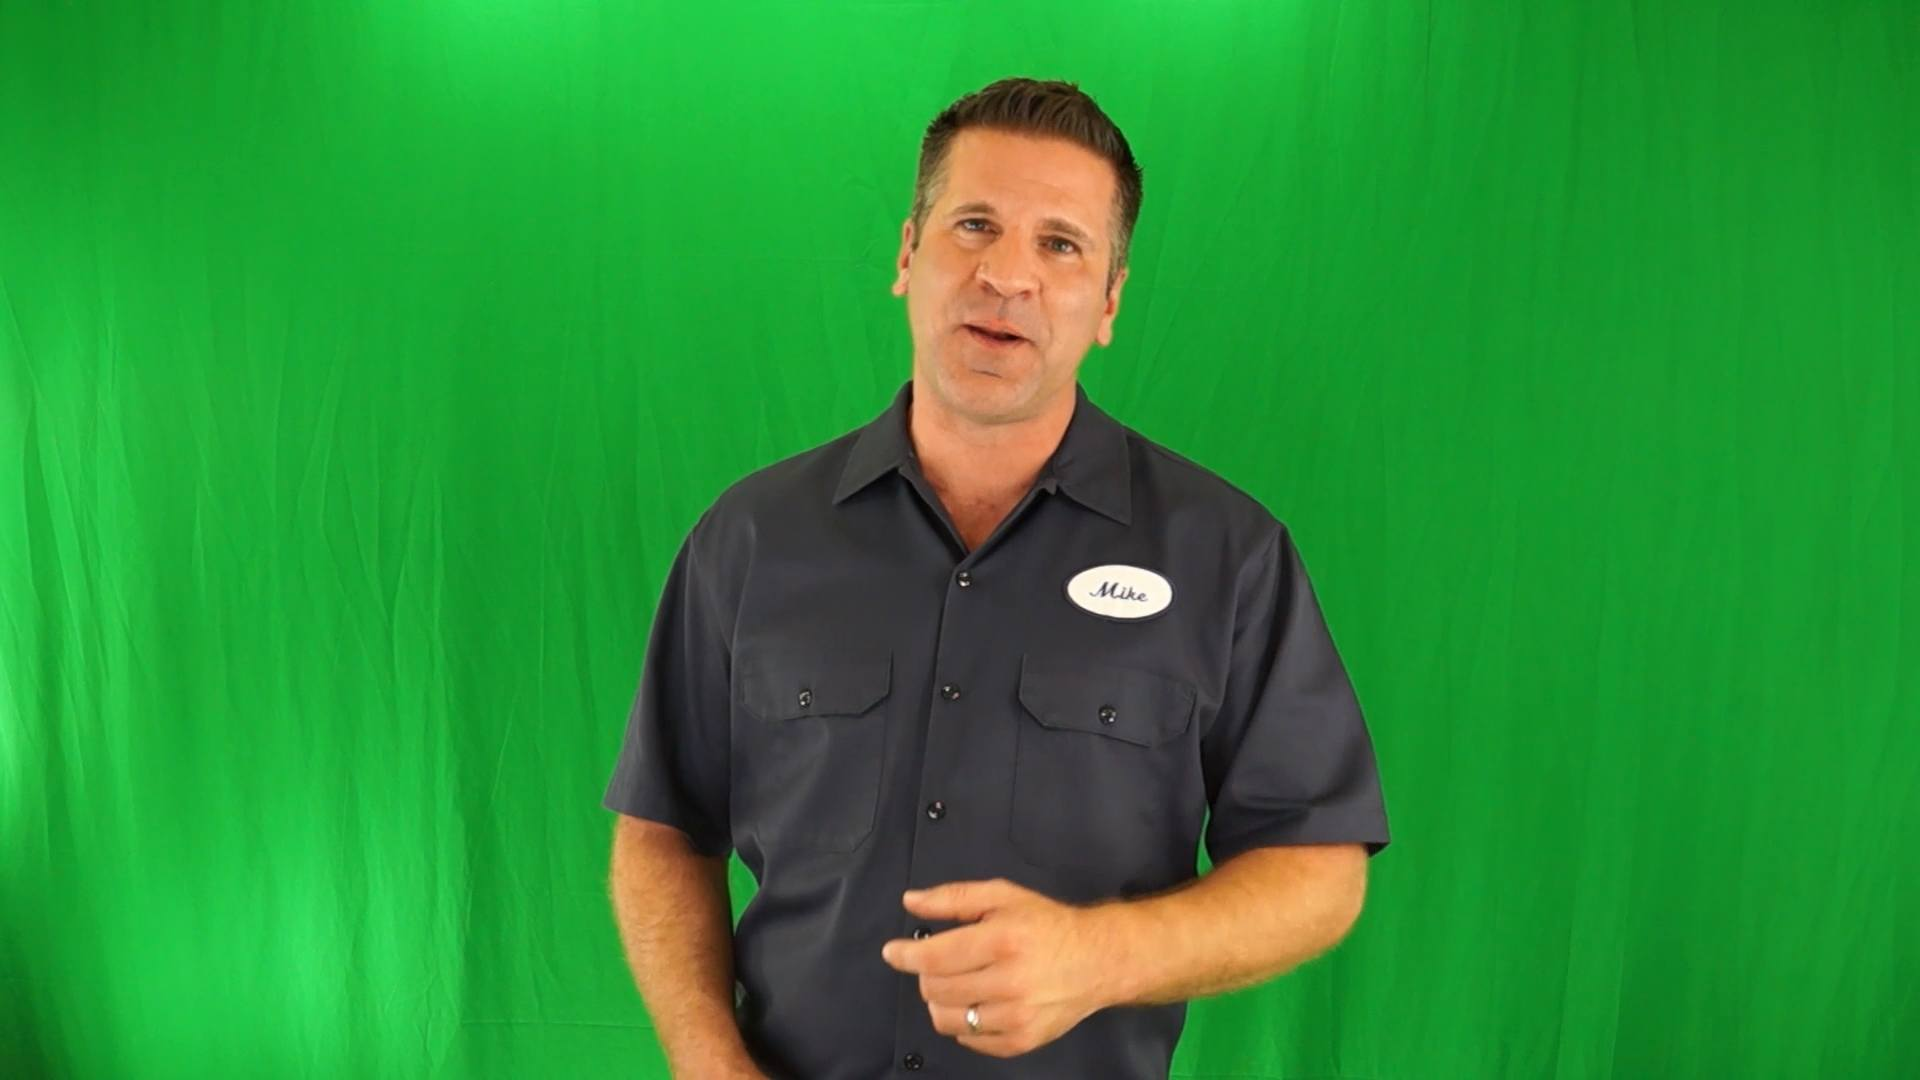 Electrician Green Screen Spokesperson